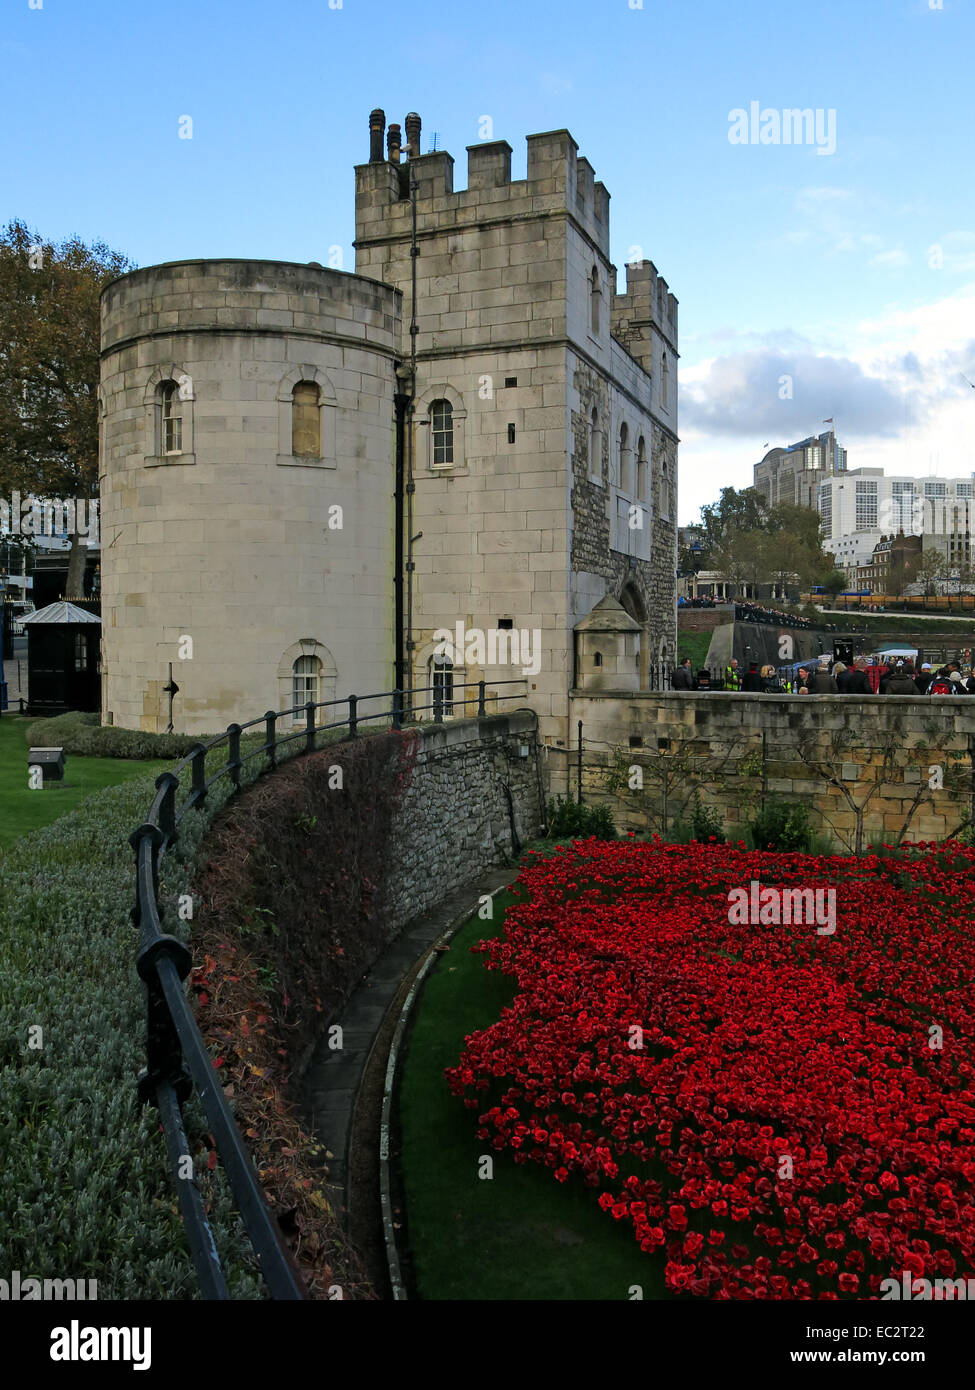 Tower,of,Greater,London,England,UK,installation,art,moat,between,July,and,November,2014,commemorating,the,centenary,of,the,outbreak,of,World,War,I,one,ceramic,poppies,888,246,British,or,Colonial,serviceman,killed,in,the,War,Paul,Cummings,Cummins,Tom,Piper,attraction,2014,tourist,tourism,red,flower,Gotonysmith,first,line,of,a,poem,by,an,unknown,World,War,I,soldier,pool,of,blood,which,appeared,to,be,pouring,out,of,a,bastion,window,(the,Buy,Pictures,of,Buy Images Of,Weeping,Window,remembrance,respect,ex-serviceman,ex-servicemen,flowers,summer,autumn,sun,sky,blue,bluesky,west,side,of,,,